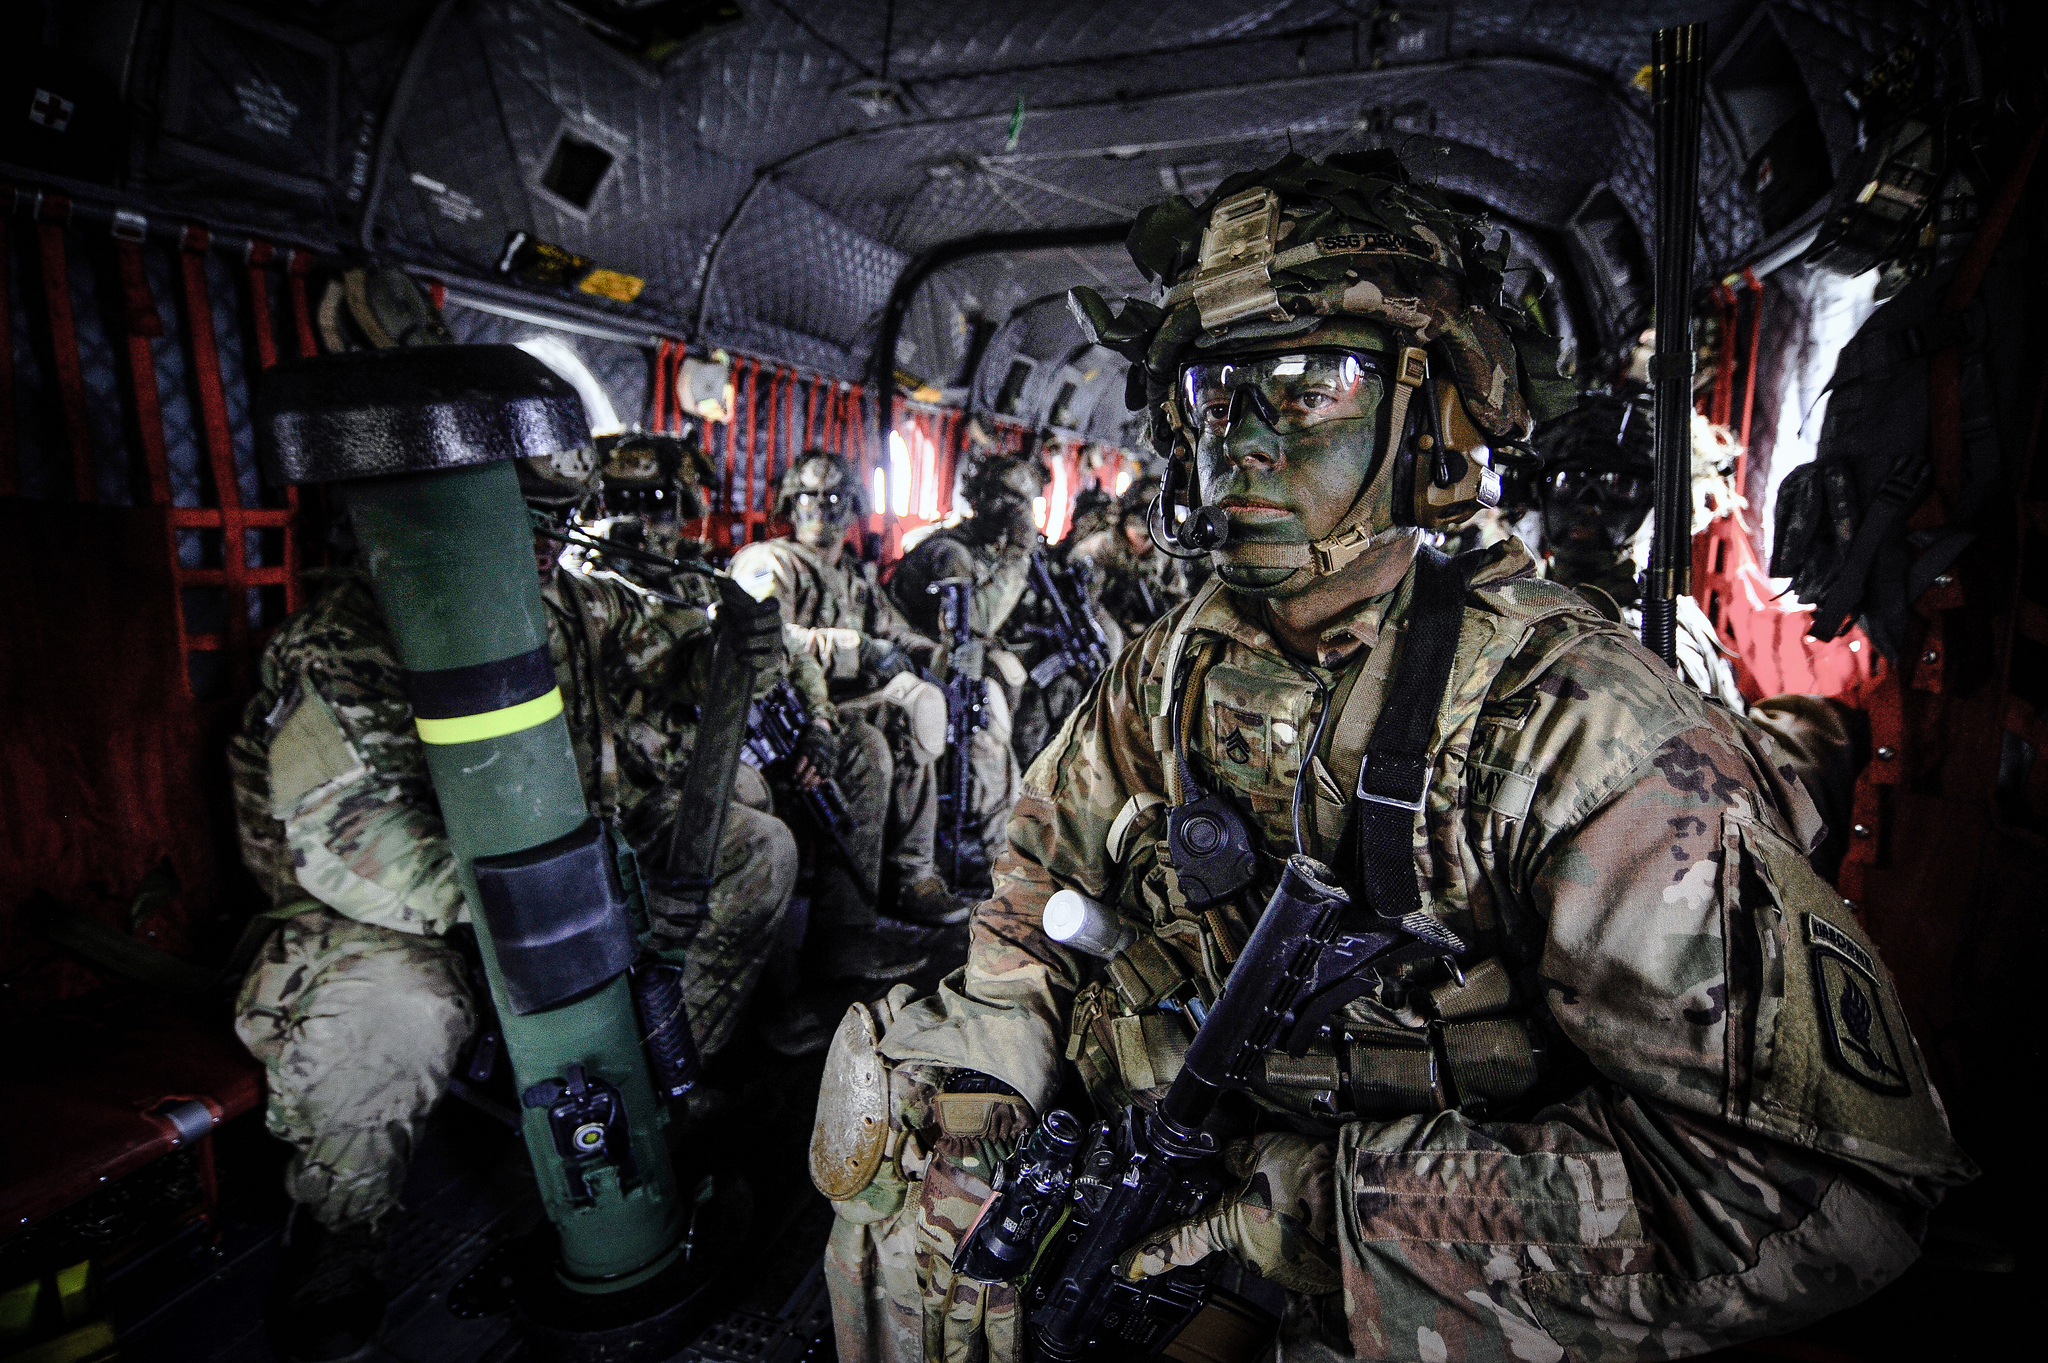 Paratroopers prepare to exit a CH-47 Chinook helicopter on March 6, 2019, during Exercise Rock Spring 19 at Grafenwoehr Training Area, Germany. (Army)